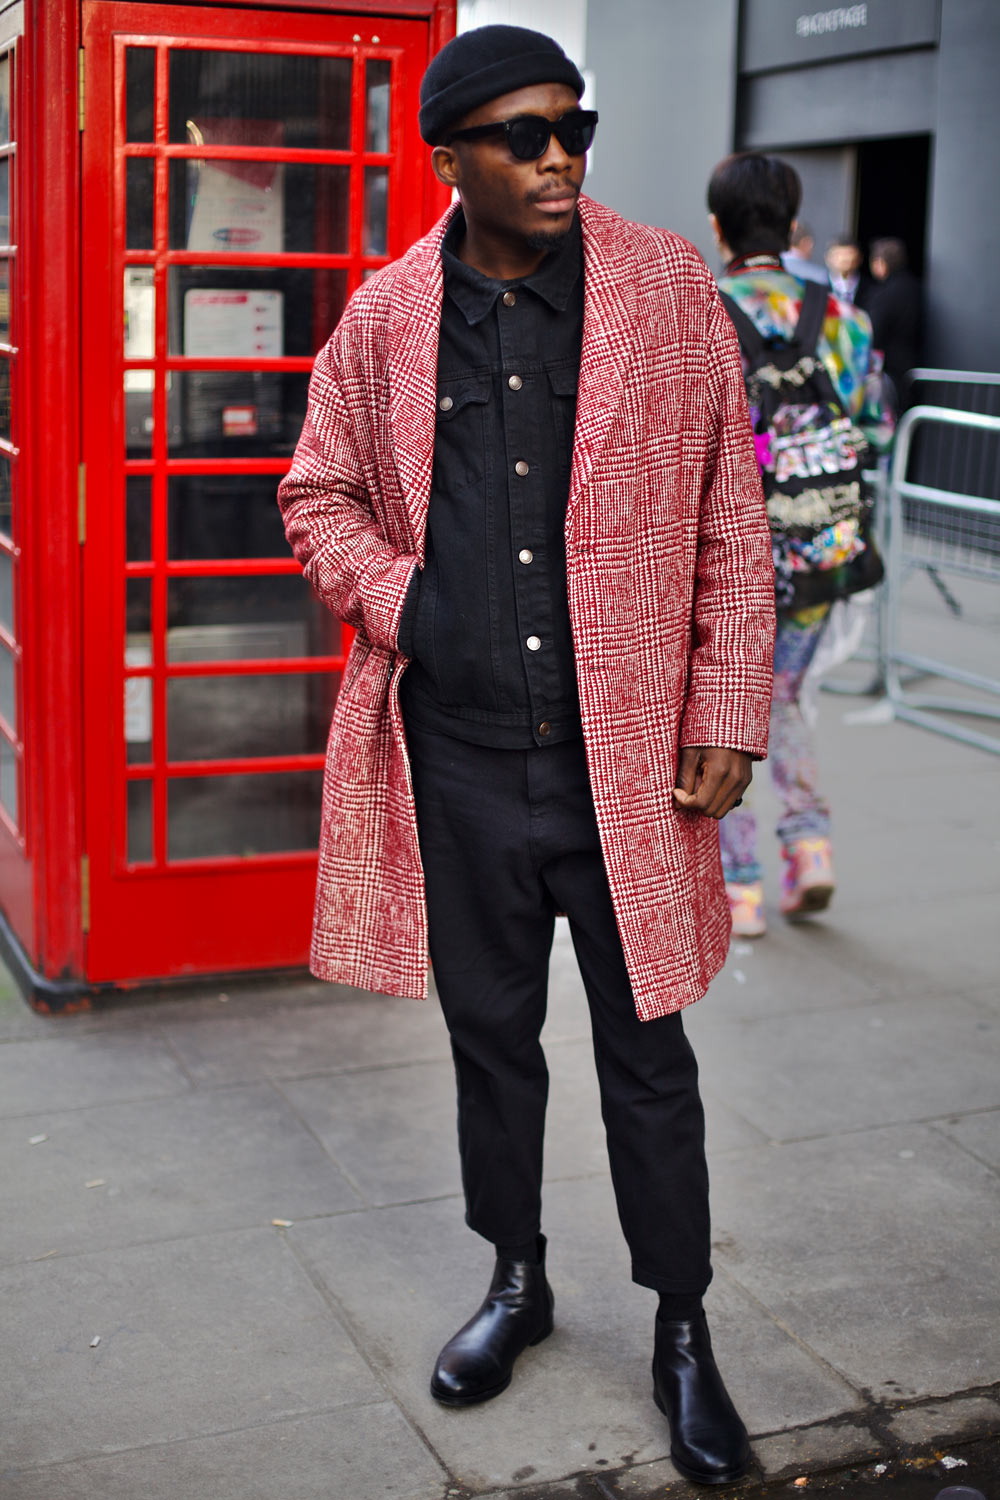 Miista Street Style from London Fashion Week 2018